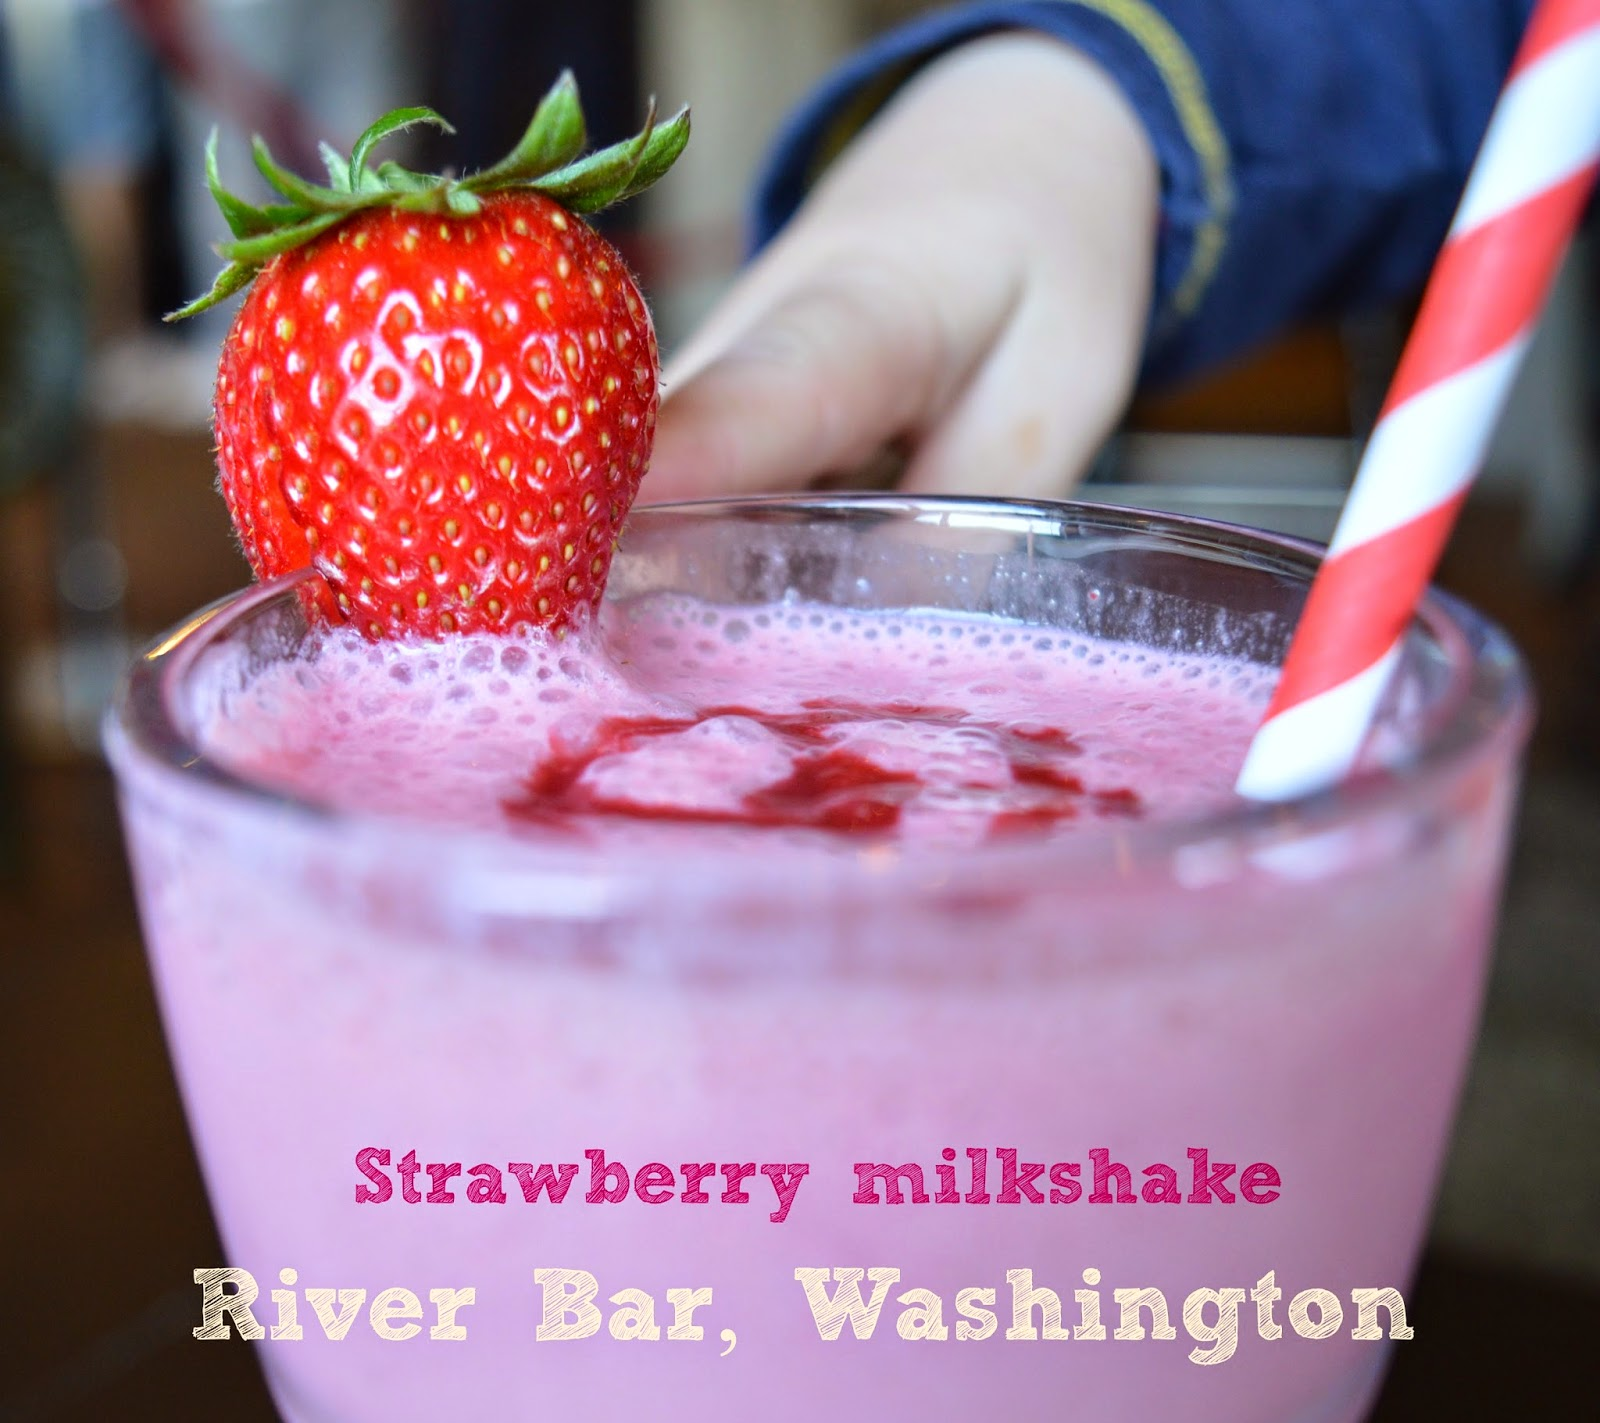 Strawberry milkshake, River Bar, Washington